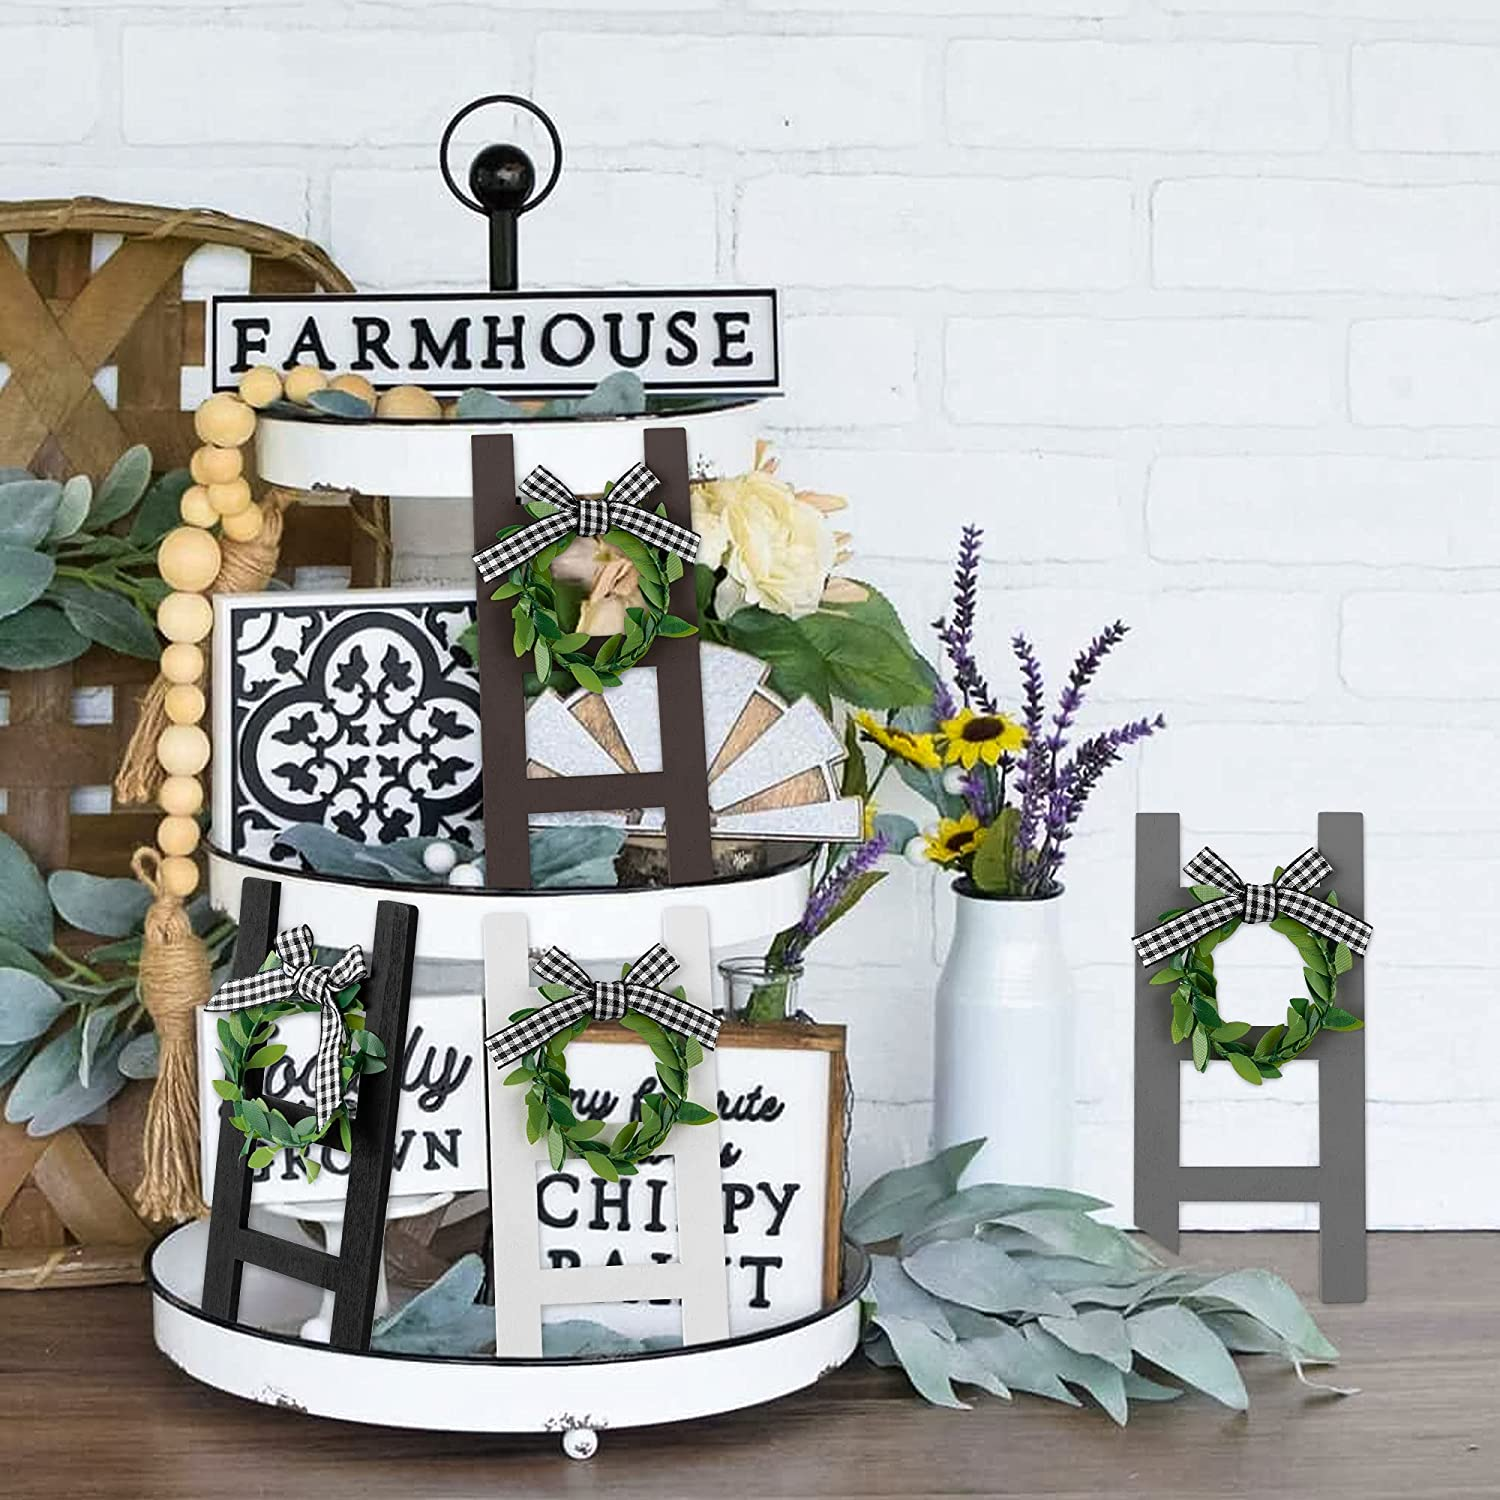 4Pcs Wooden Farmhouse Ladder Tiered Tray Decoration Classical Plaid Rustic Farmhouse Wooden Tray Decor Ladder Sign Shelf Sign Photo Booth Props for Spring Summer Holiday